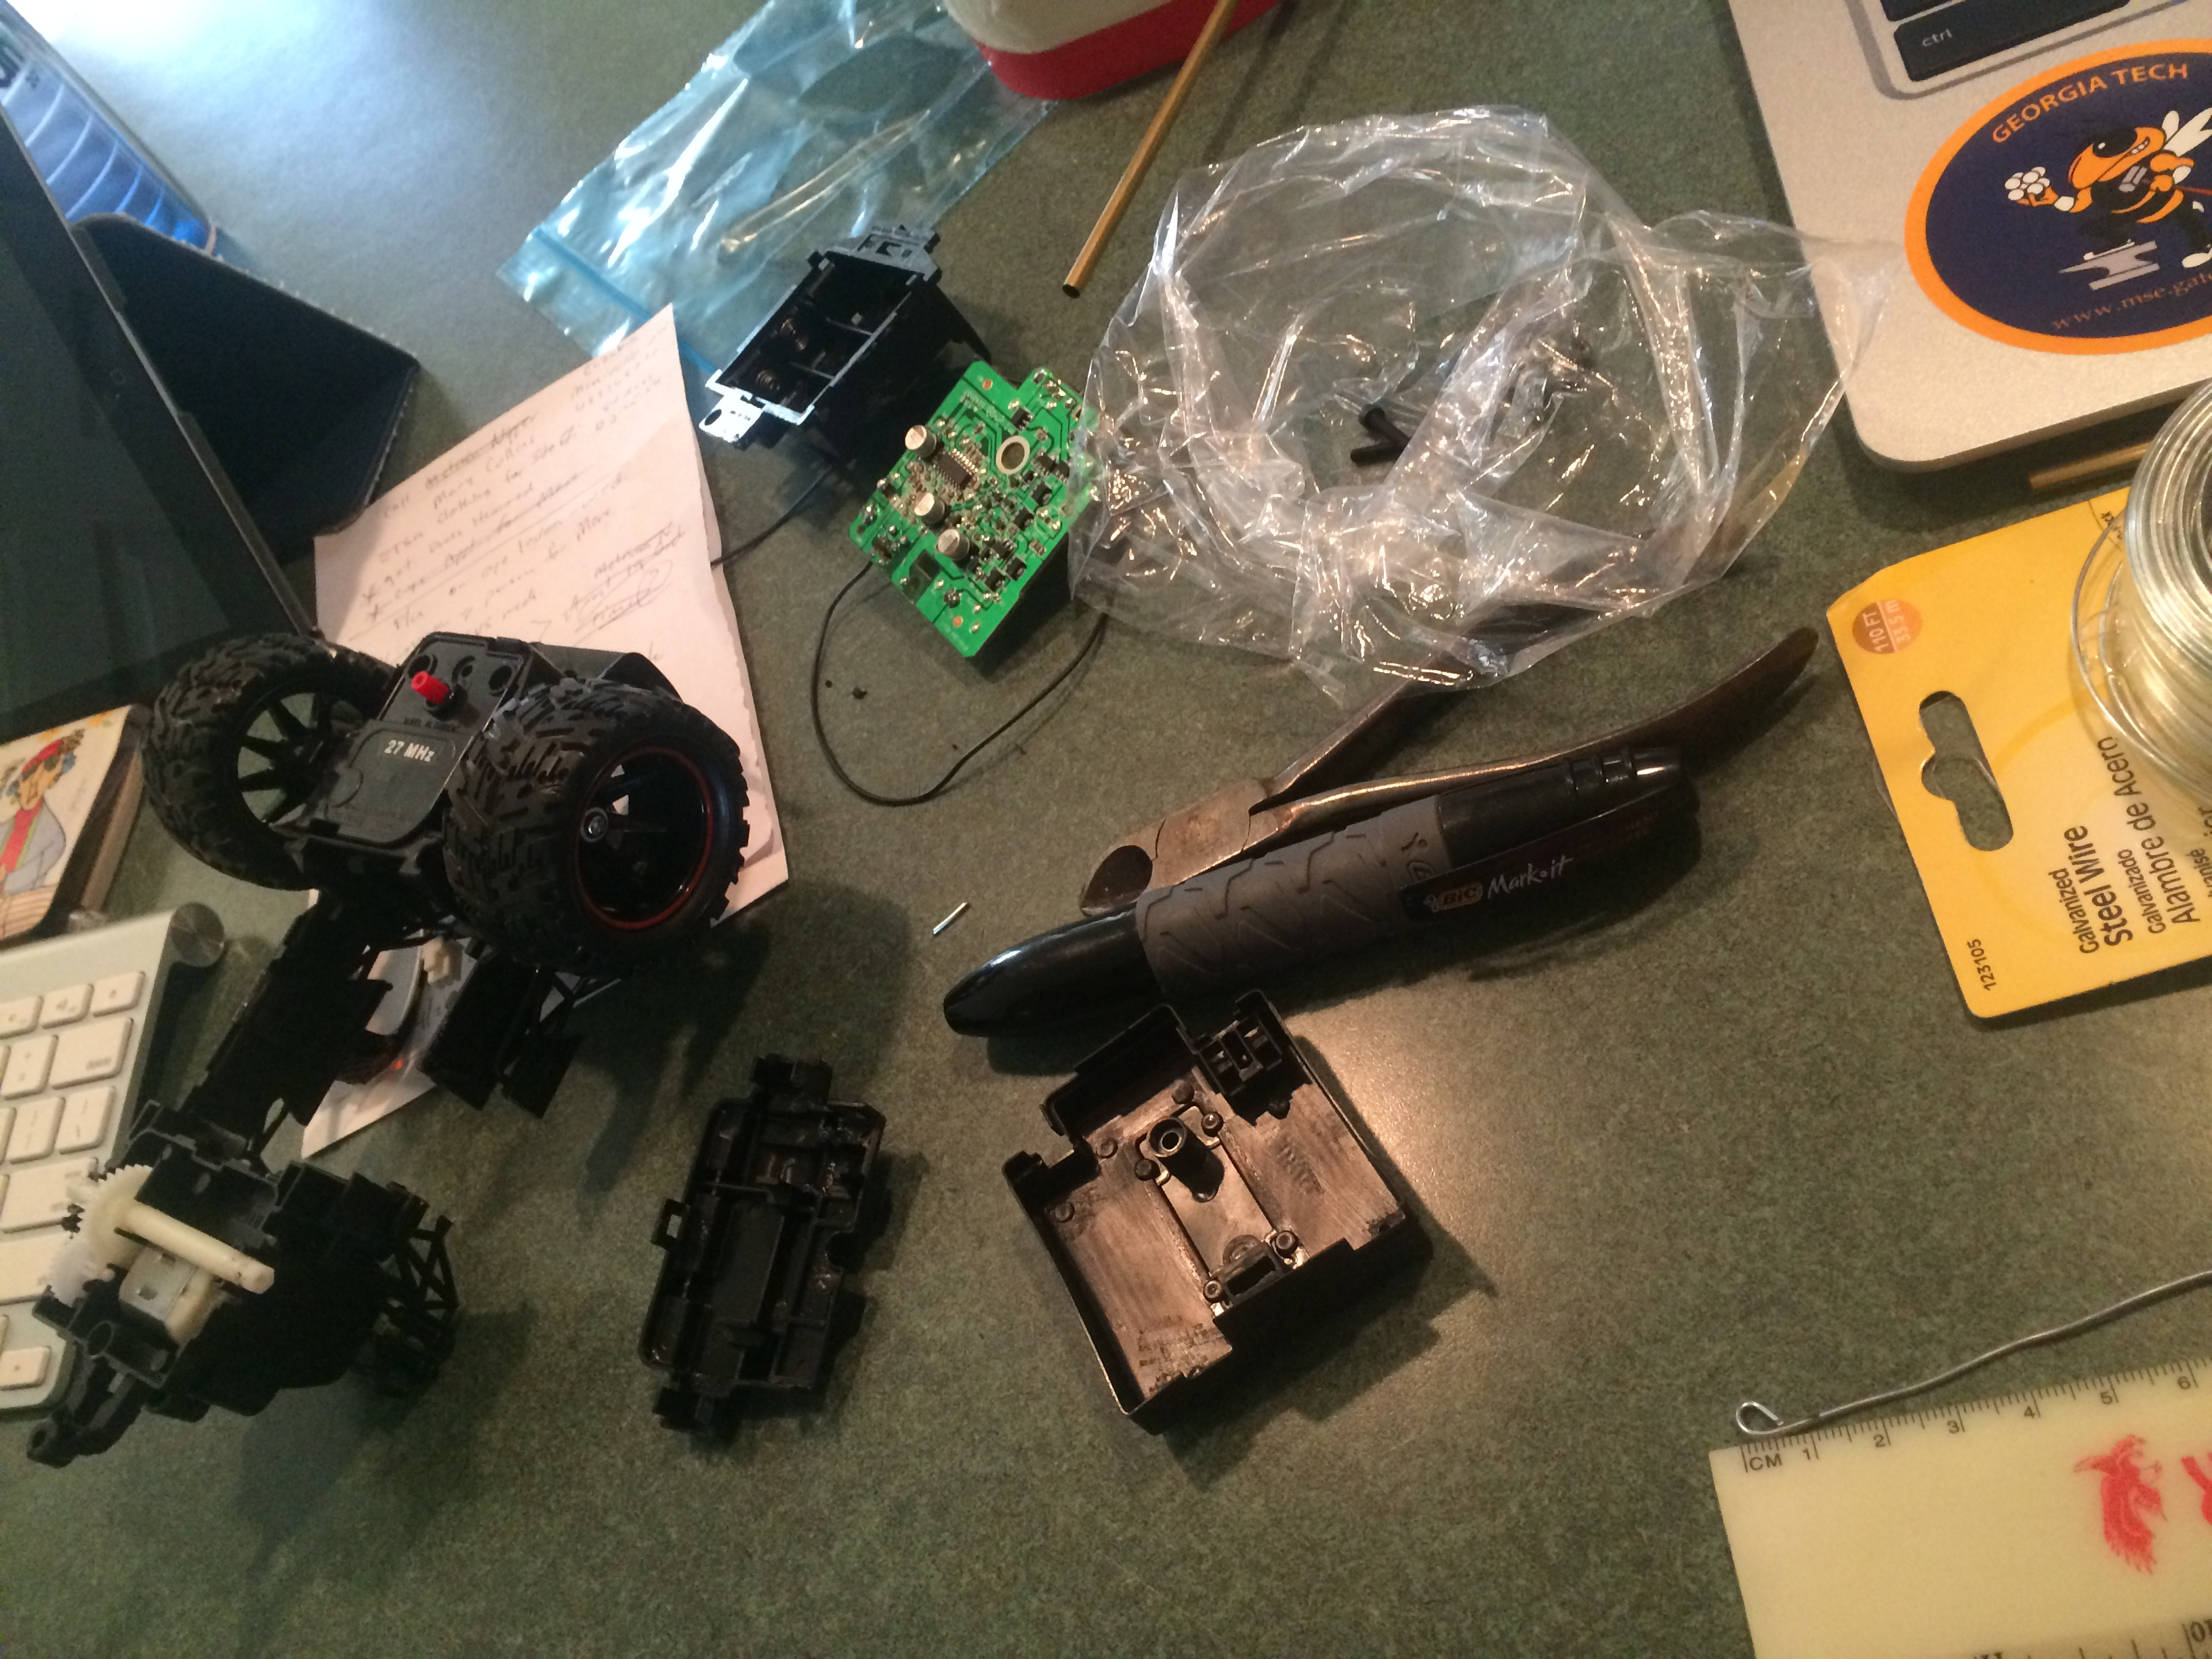 Taking apart the RC car and saving the motor, circuit board, and battery holder.